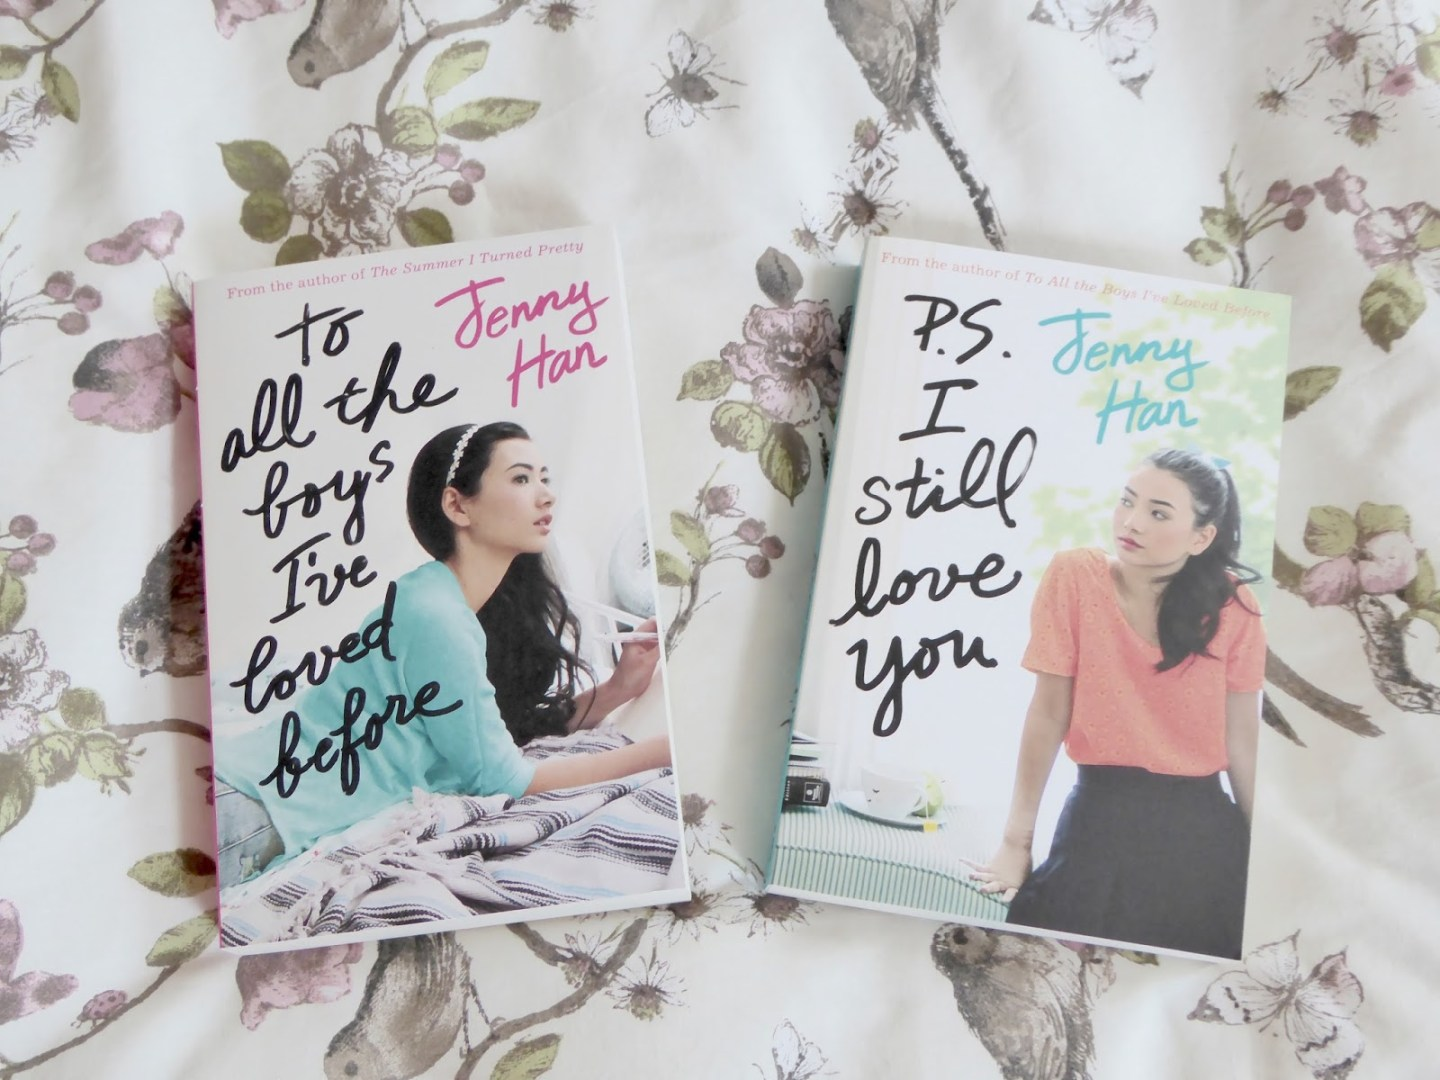 To All The Boys I've Loved Before and PS. I Still Love You by Jenny Han | Book Review